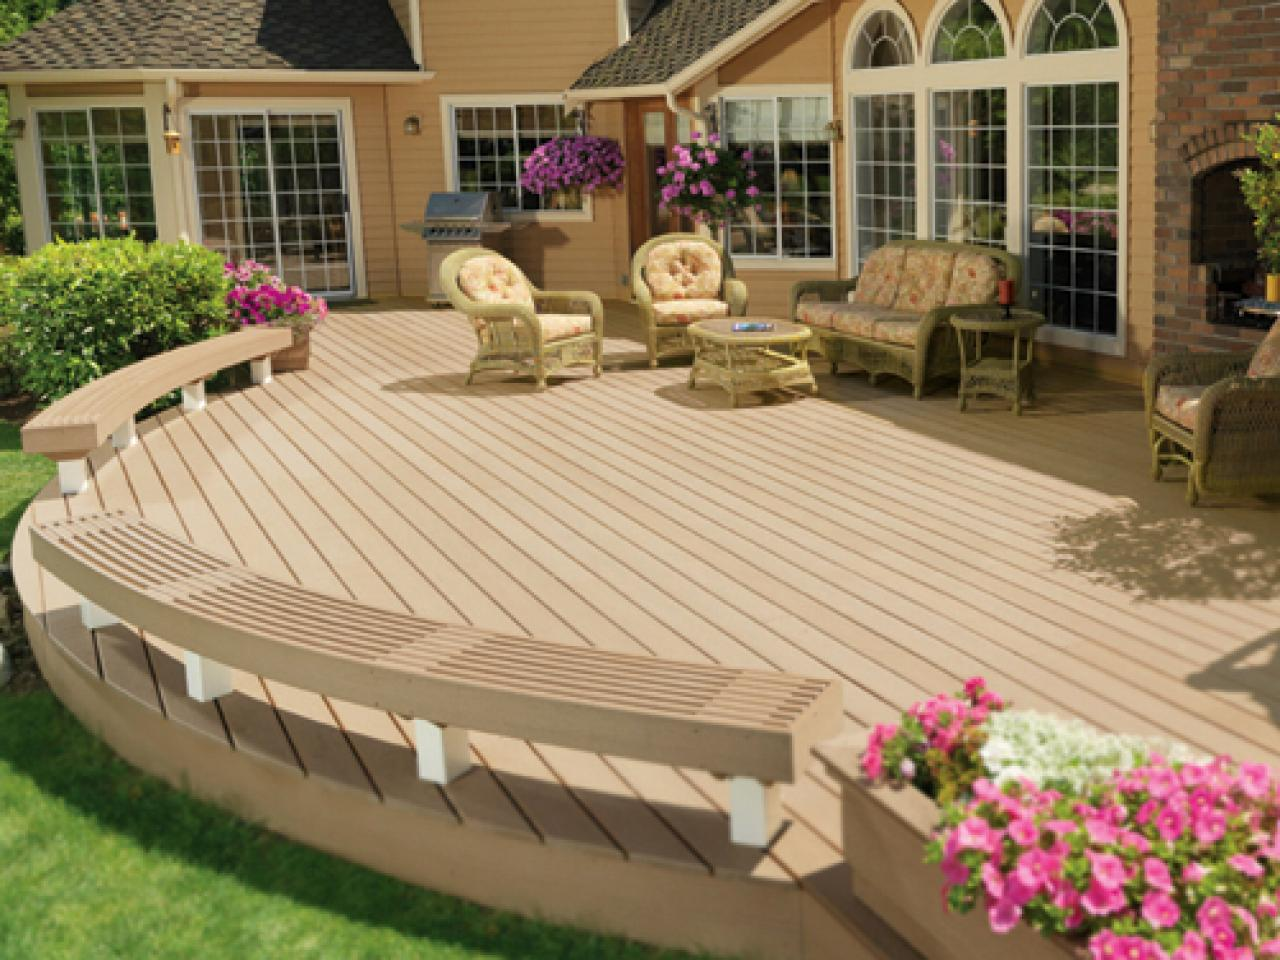 decking ideas created for lounging FNERSBK